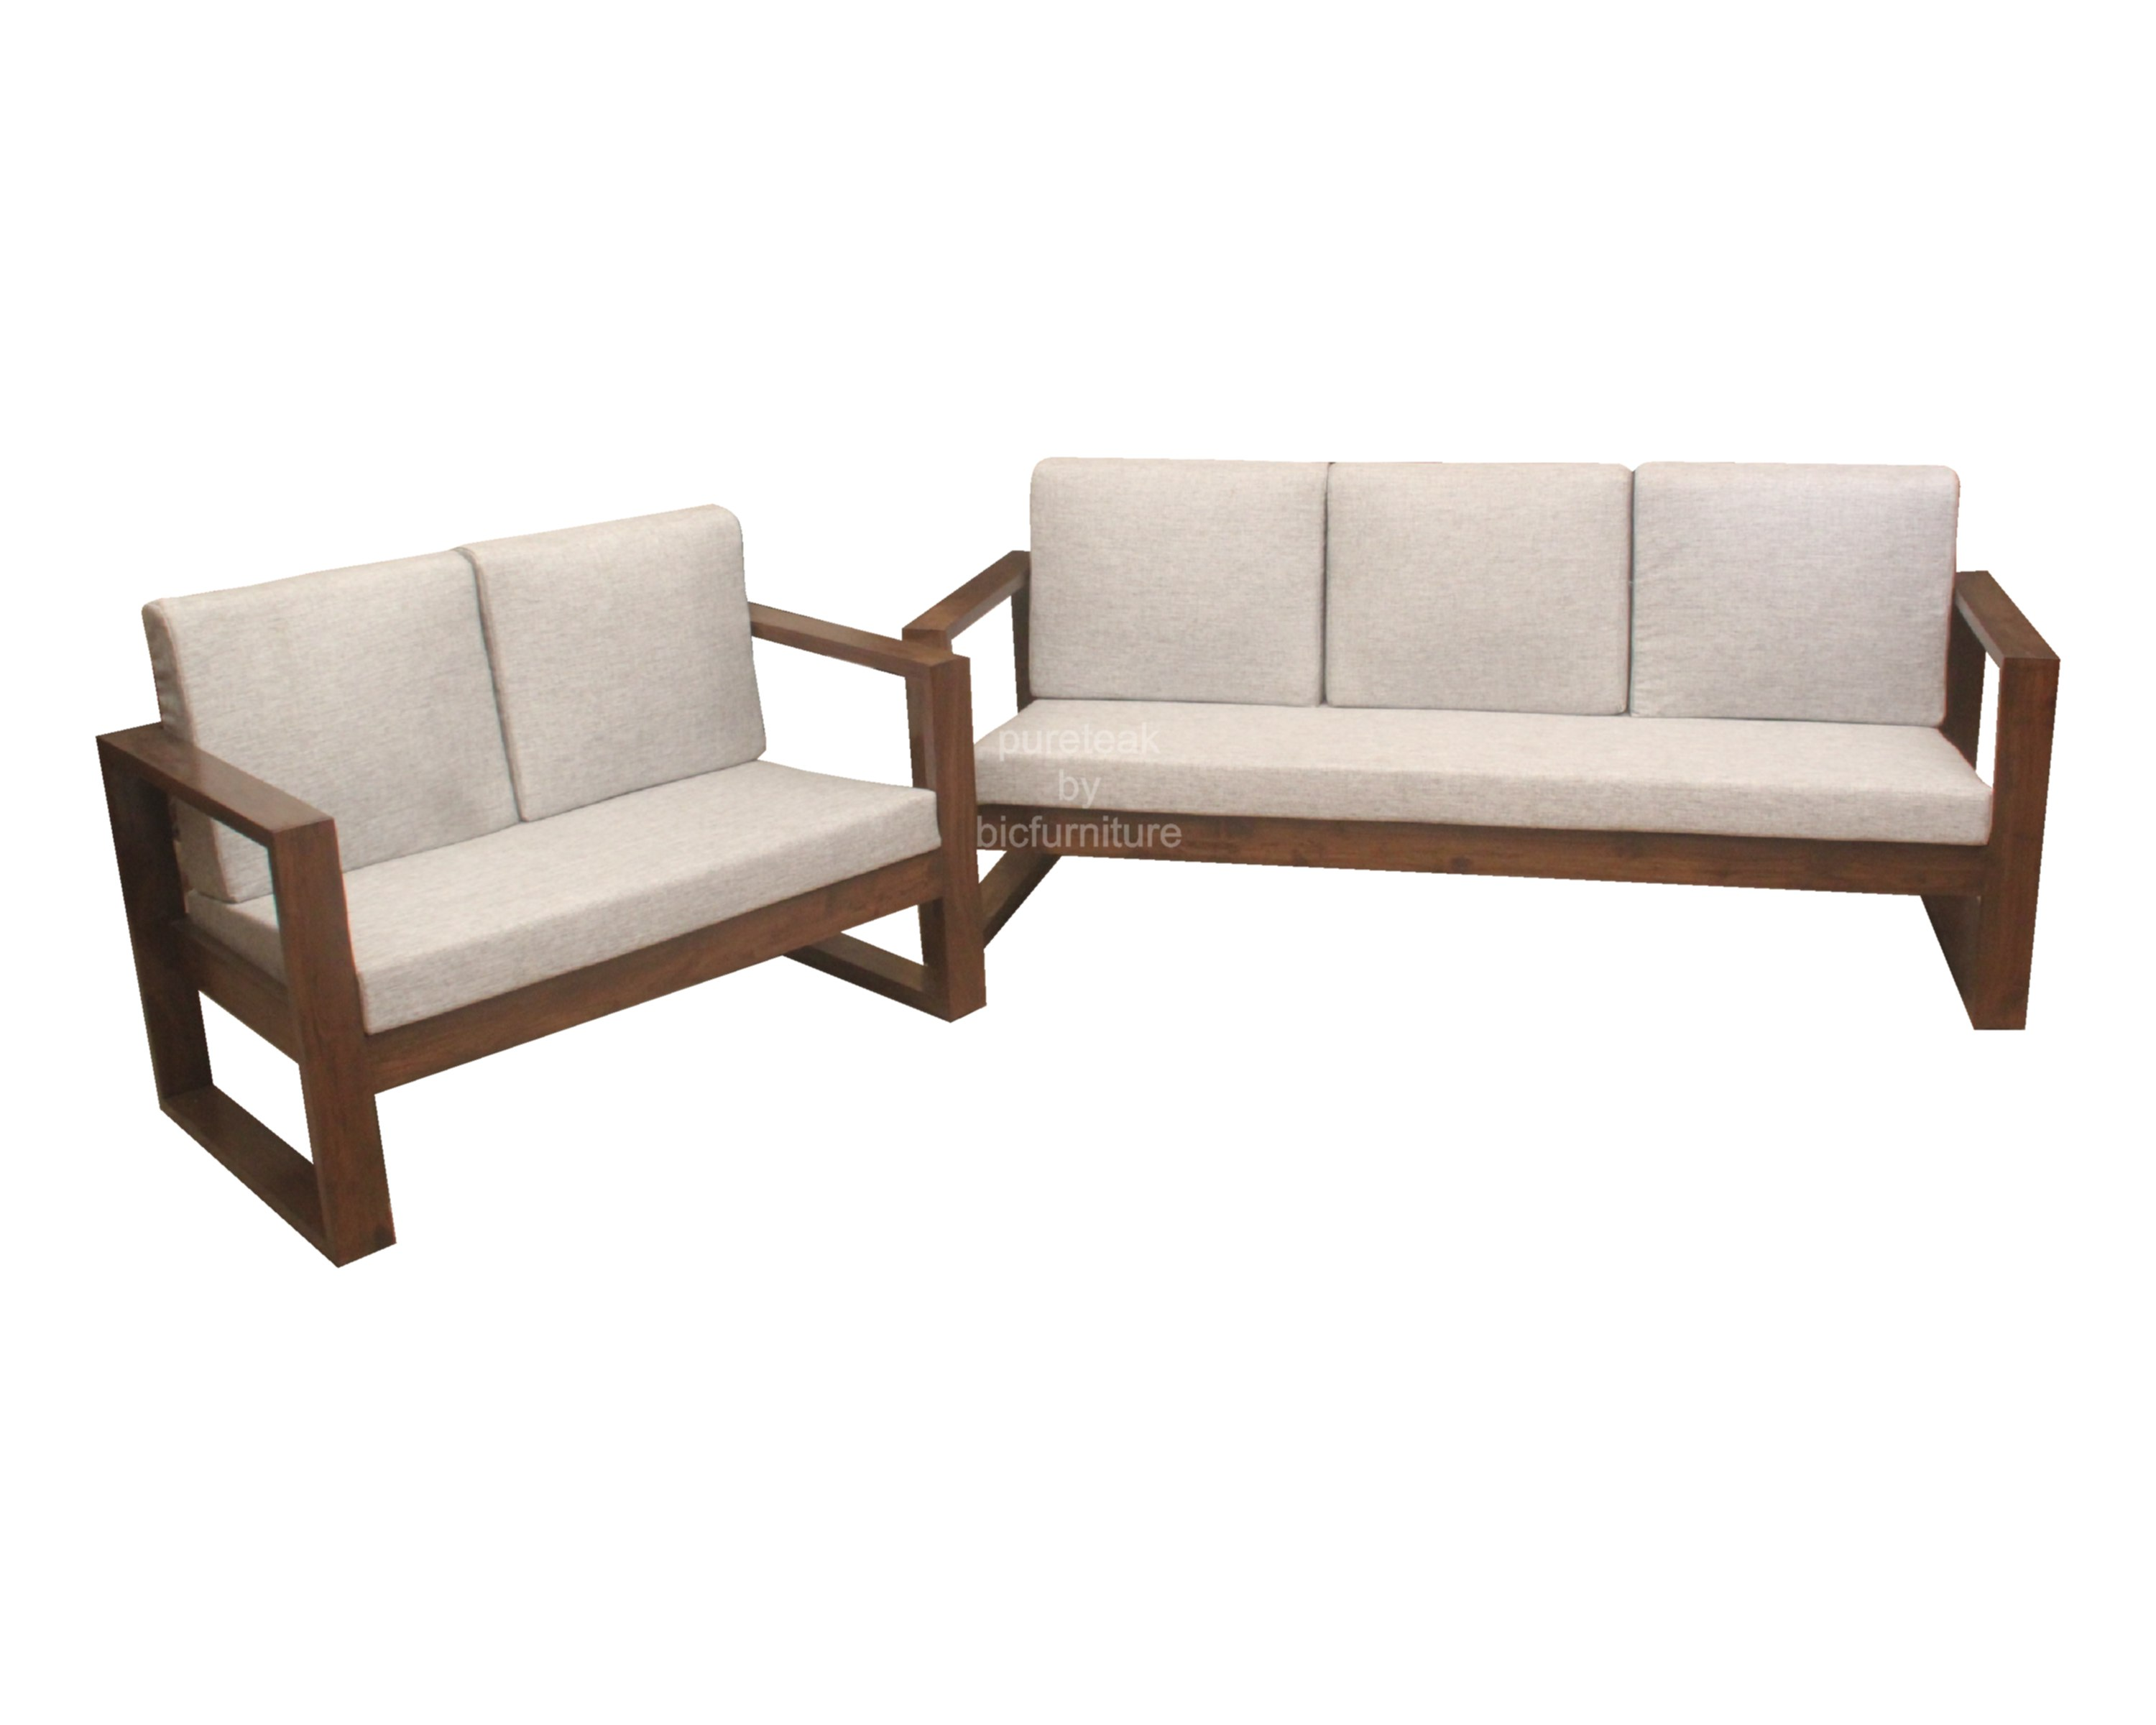 Wooden Sofa Set In Simple Design WS 67 Details